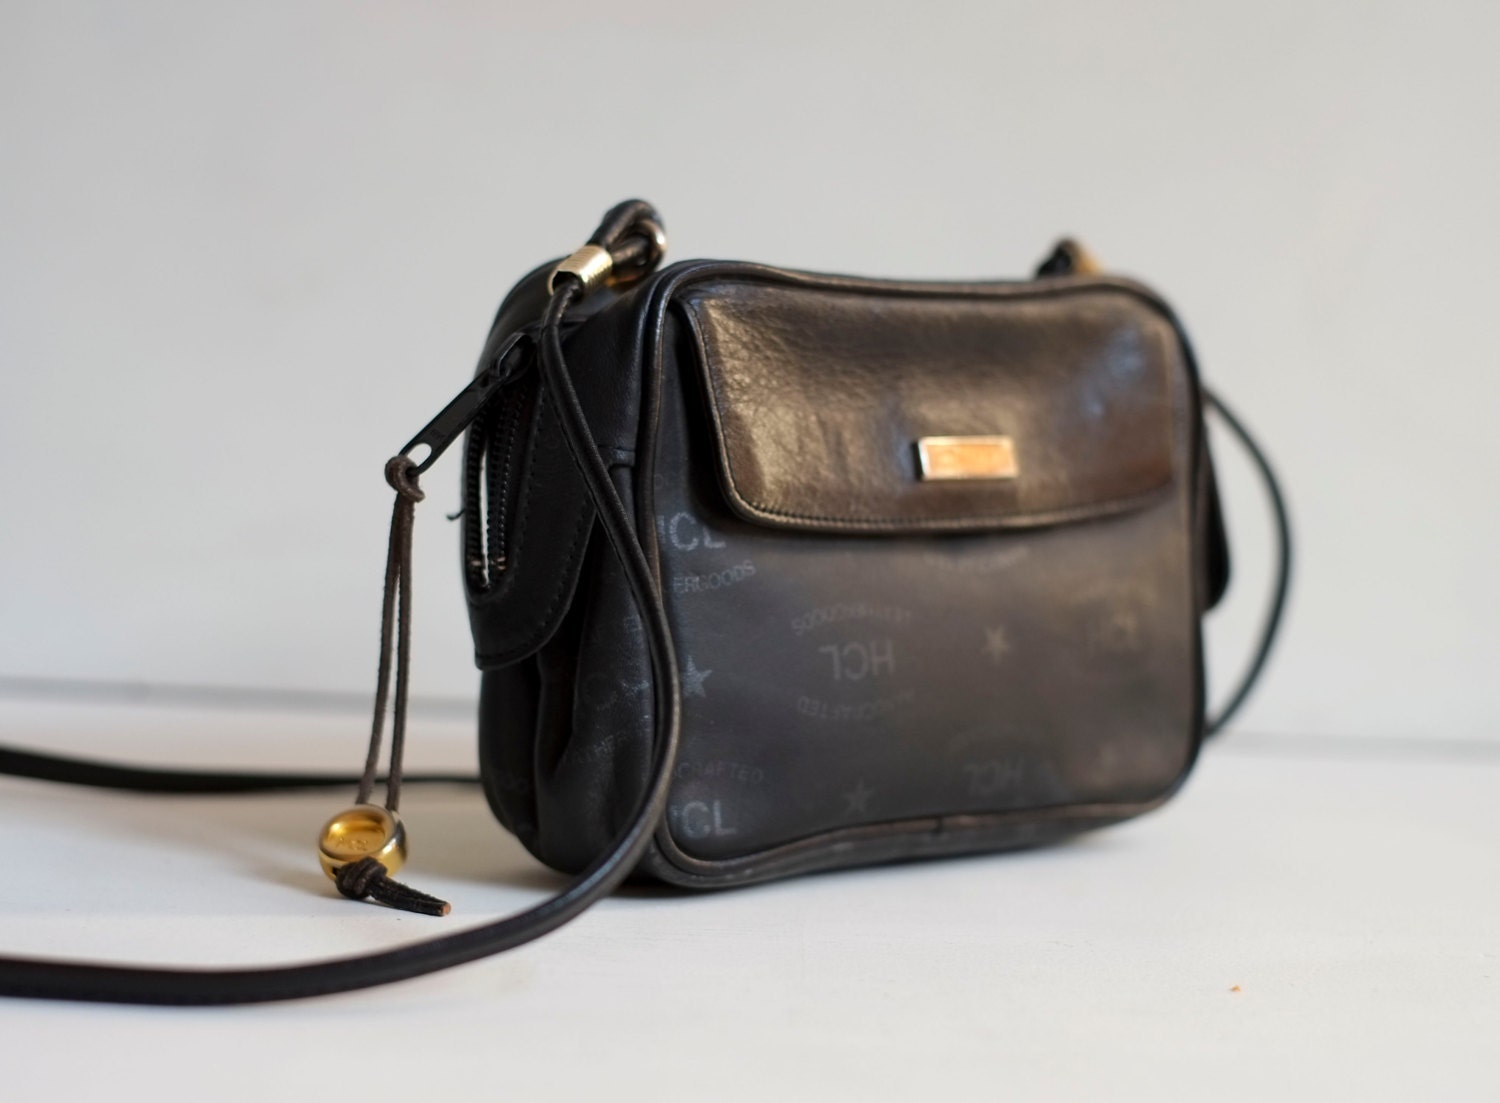 Hcl handcrafted leather goods - Previous Item Created With Sketch Next Item Created With Sketch